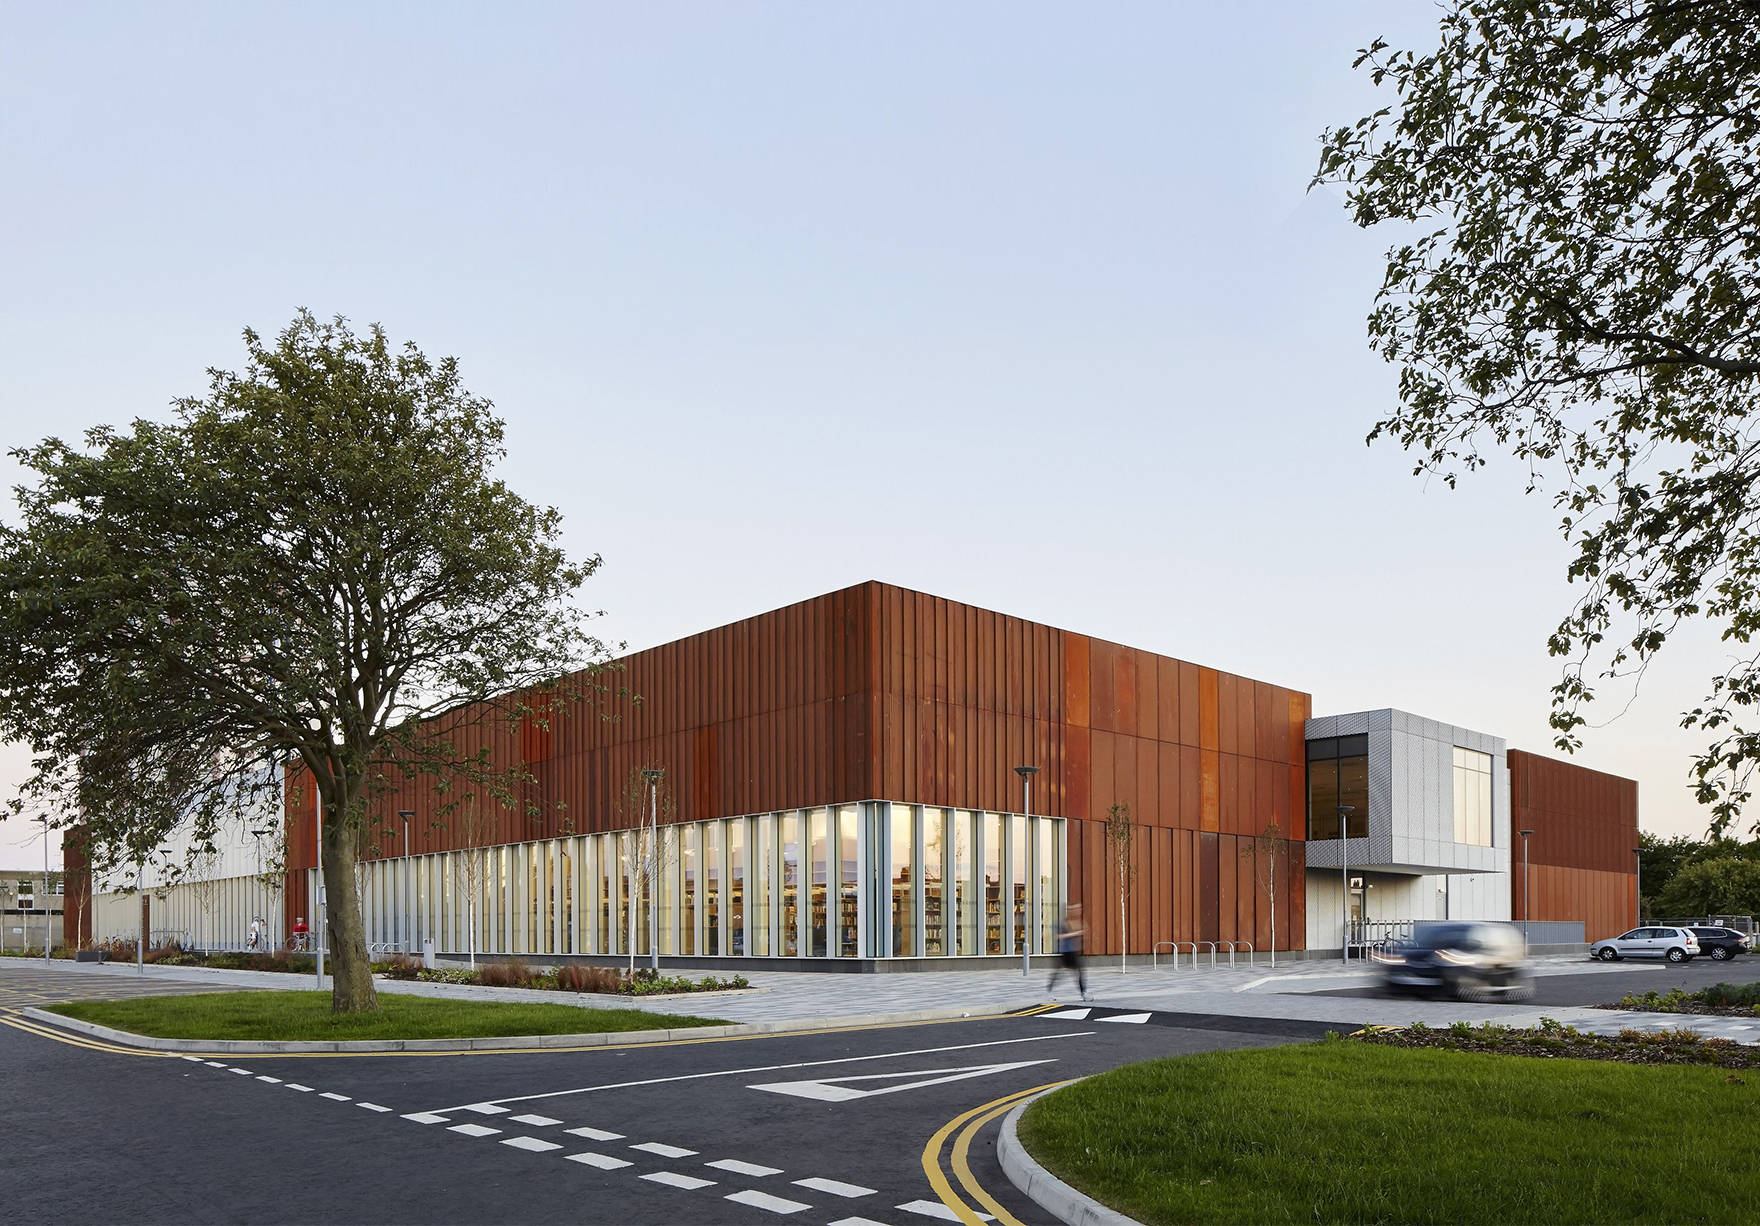 Hebburn Central Sport Leisure Pool Public Library Building Active Frontage Lh